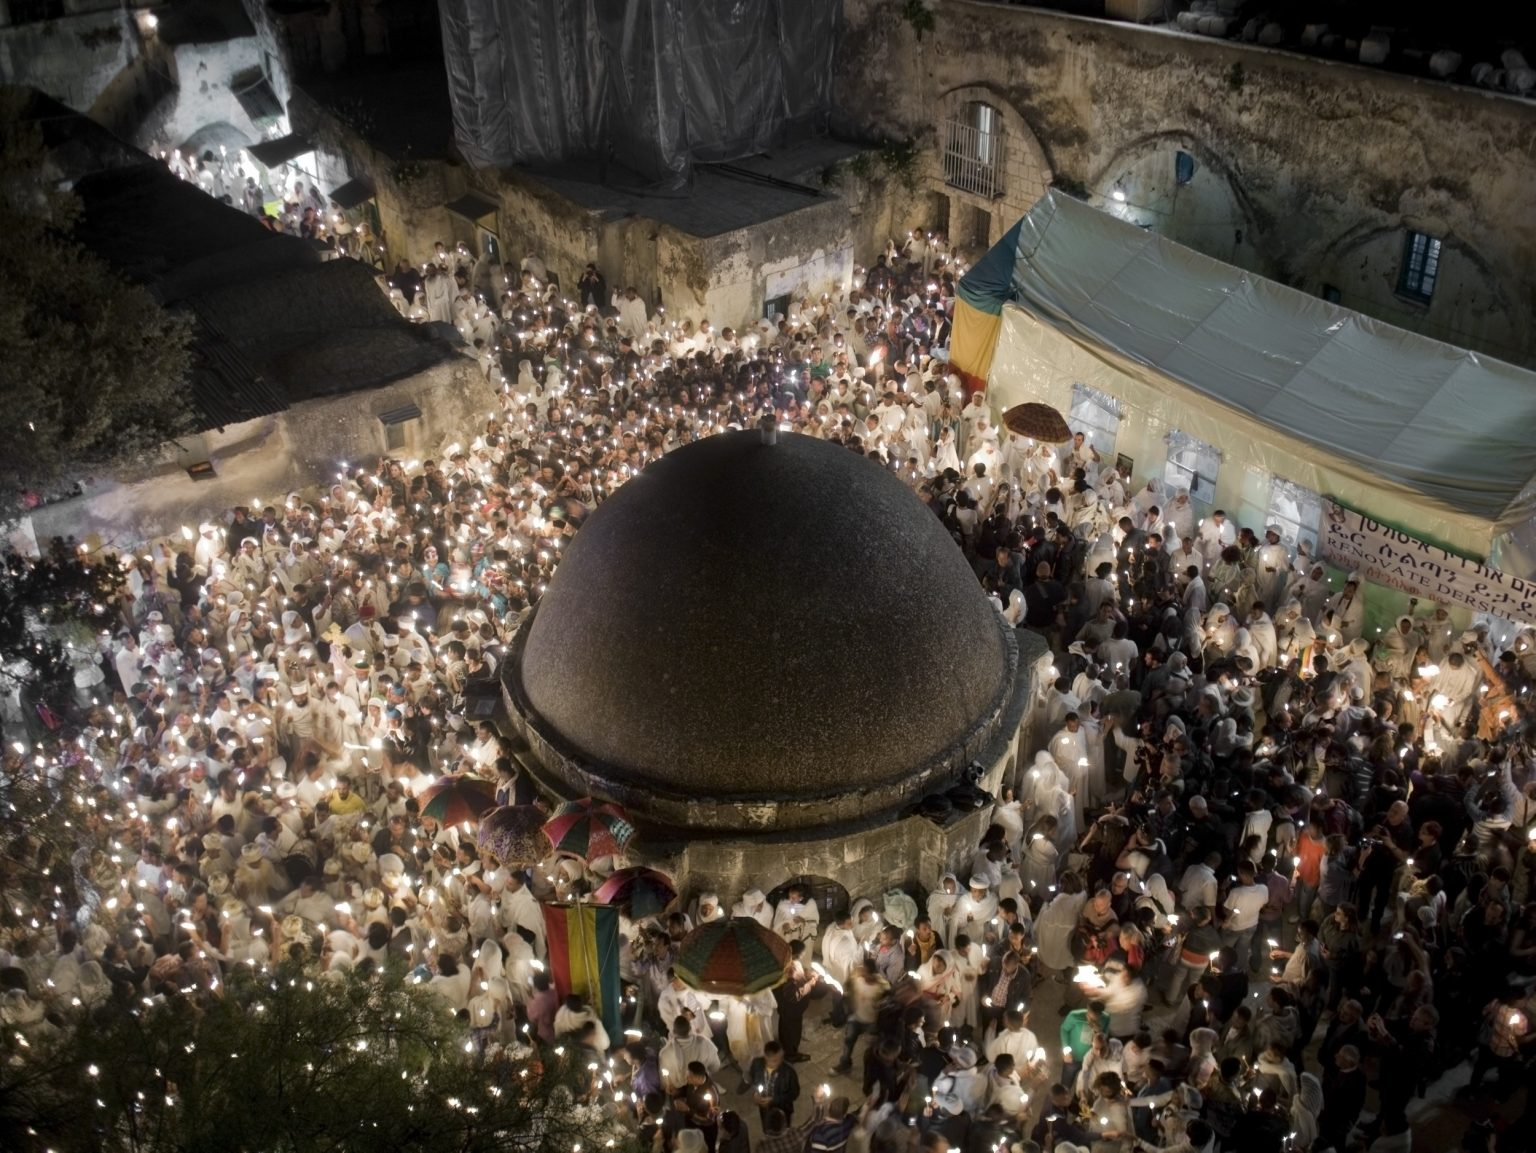 Celebration of the Holy Fire in the Ethiopian section of the Holy Sepulchre.